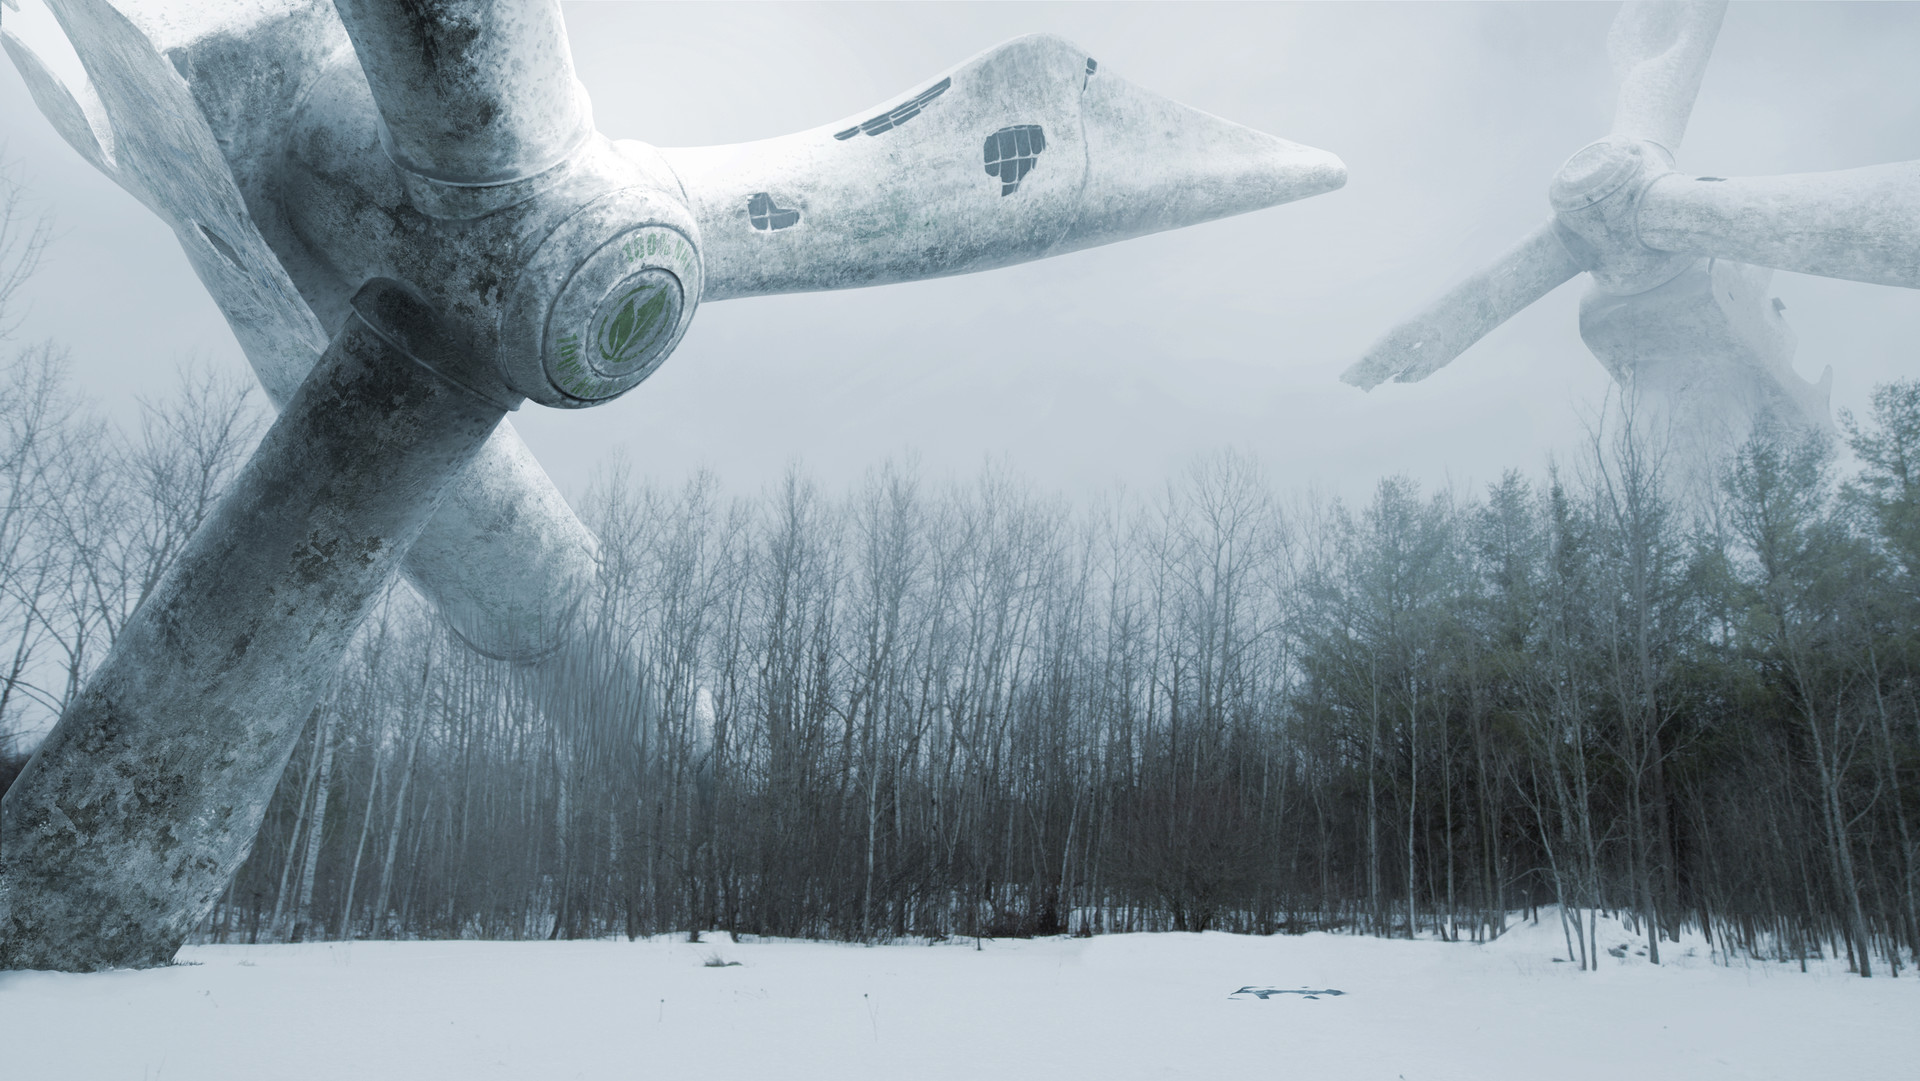 Matte Painting for my scifi short film EXT.